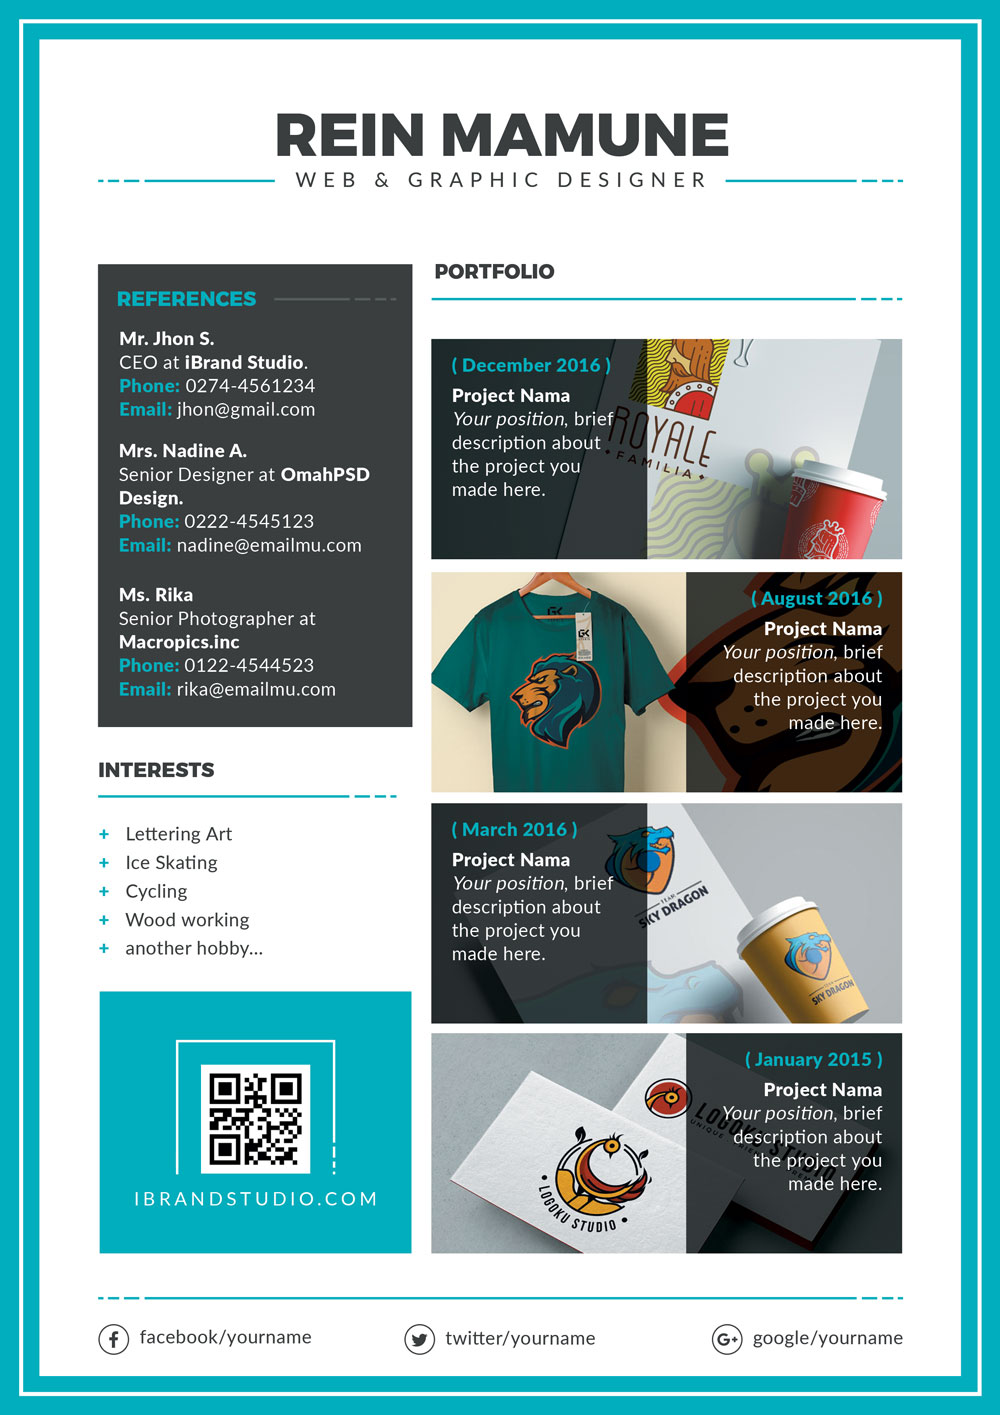 Free-PSD-Resume-Template-Cover Letter & Portfolio Design-For-Web-&-Graphic-Designer (3)